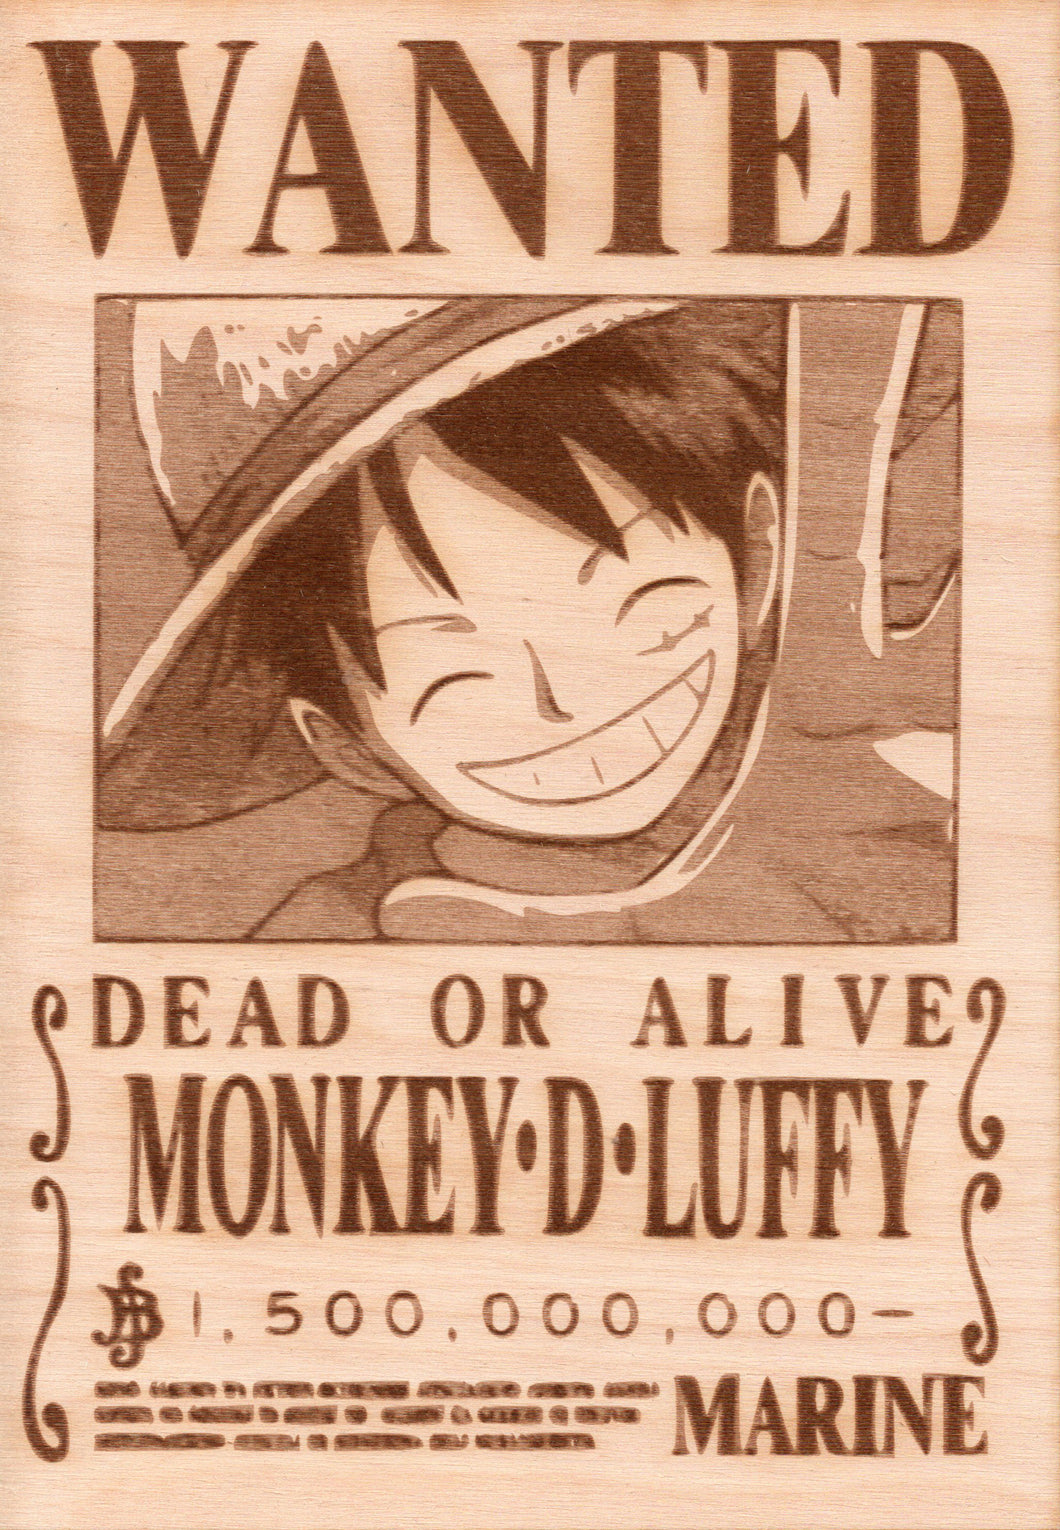 One Piece - Luffy Wooden Wanted Poster - TantrumCollectibles.com